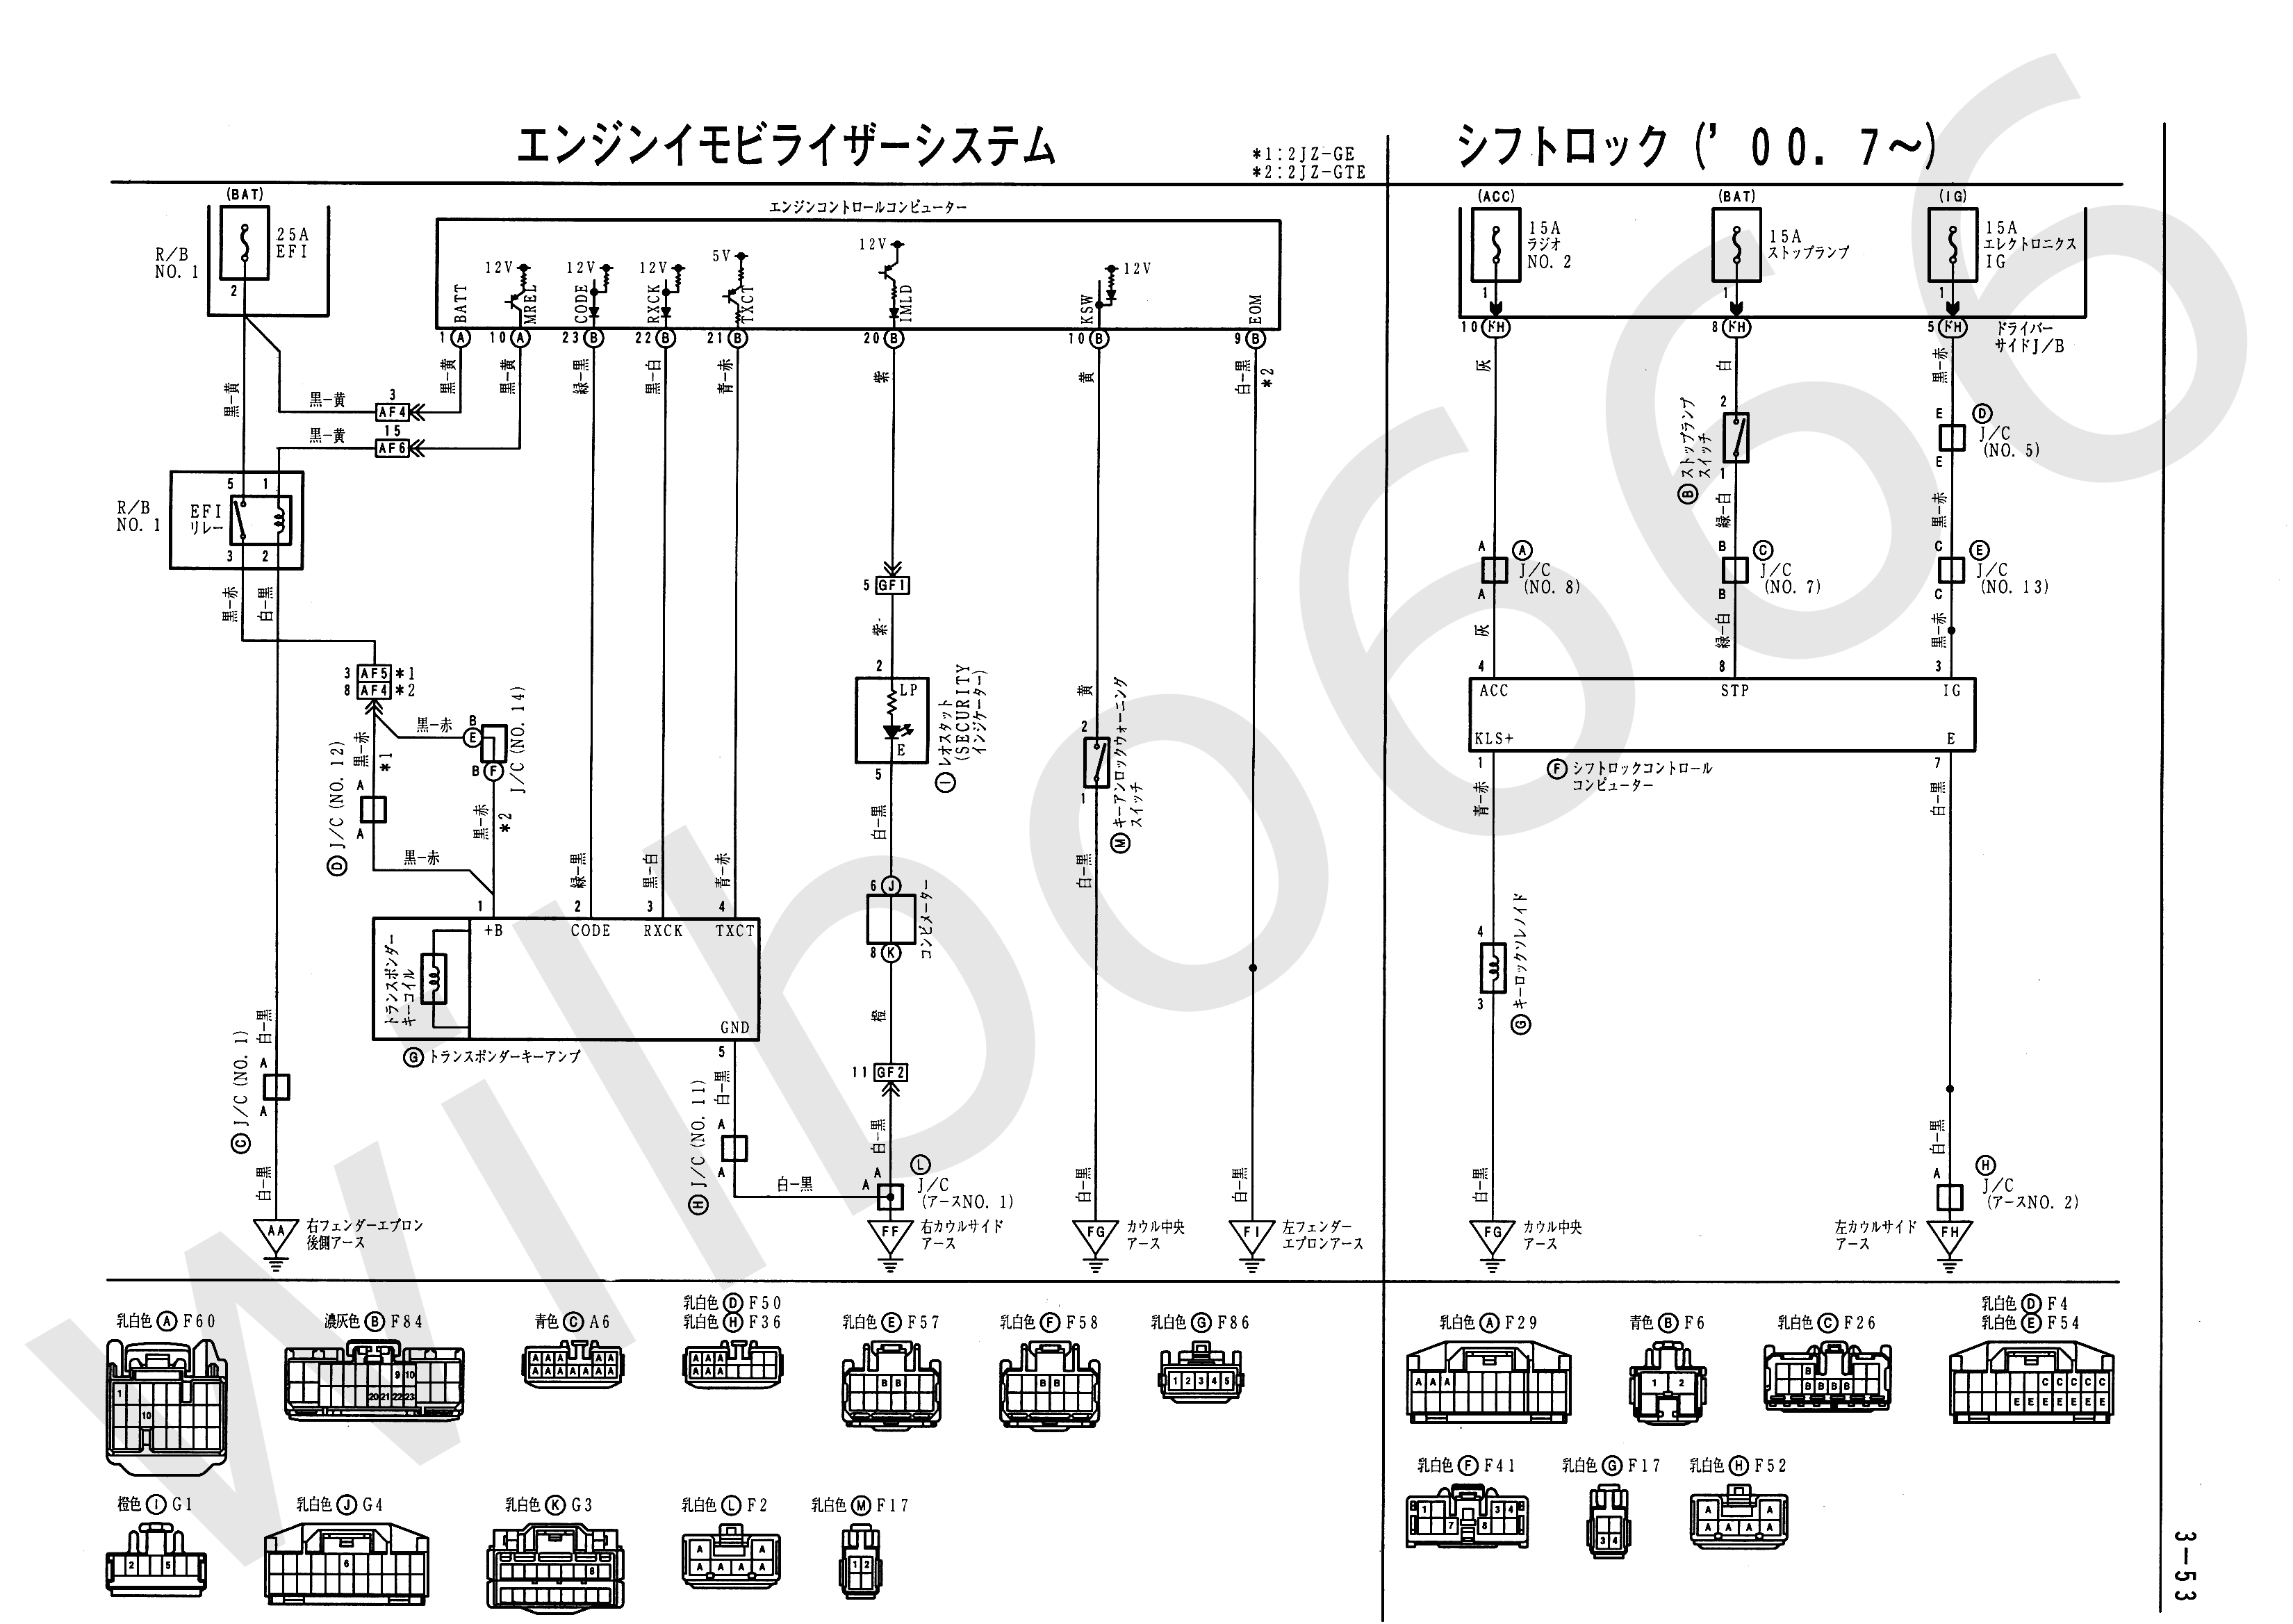 Wilbo666 2jz Gte Vvti Jzs161 Aristo Engine Wiring Air Conditioning Electrical Diagram